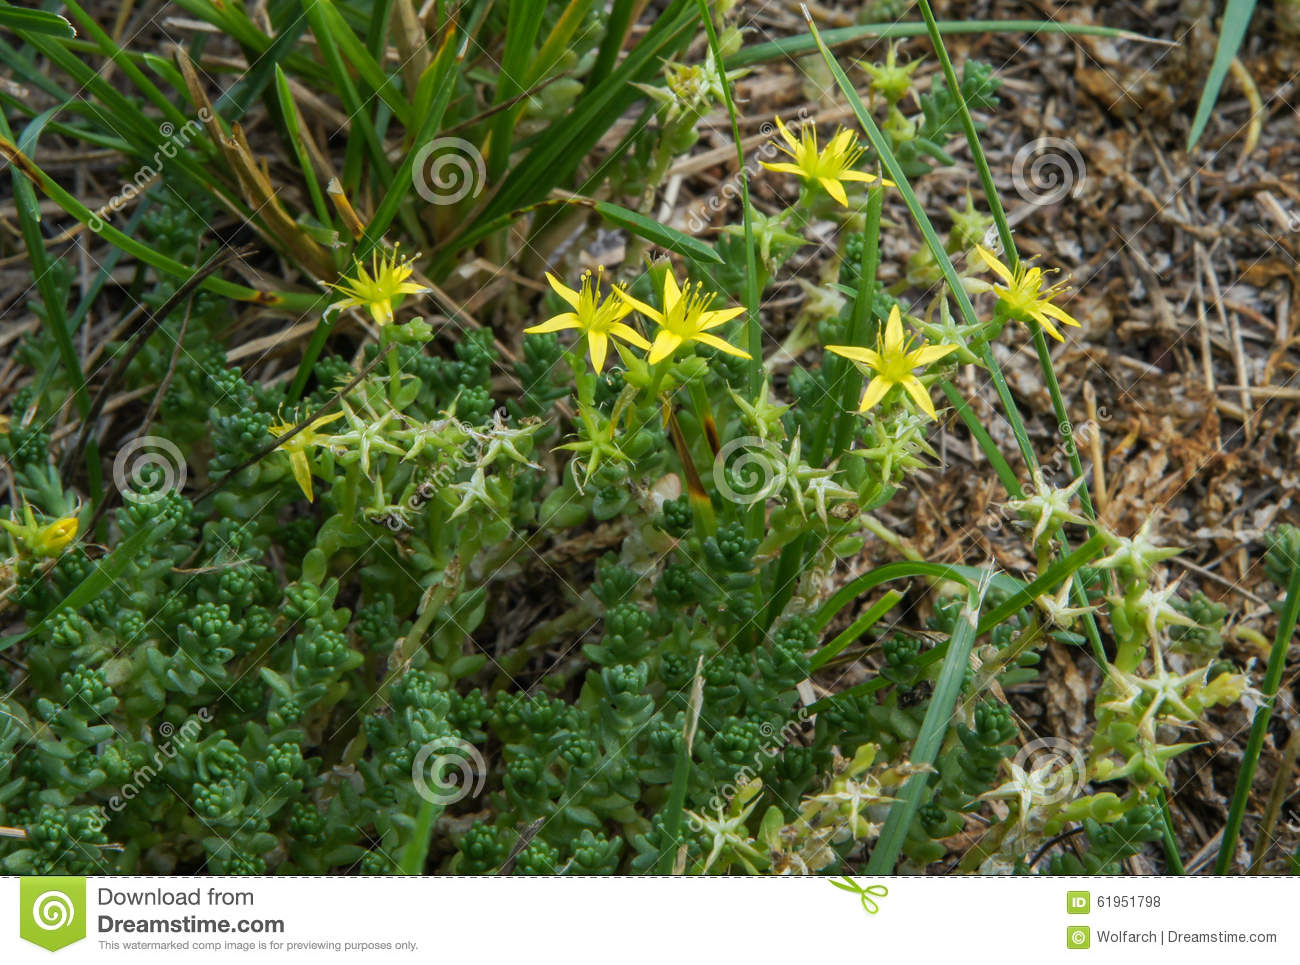 Yellow flowers on succulent plant stock photo 61951798 megapixl yellow flowers on succulent plant mightylinksfo